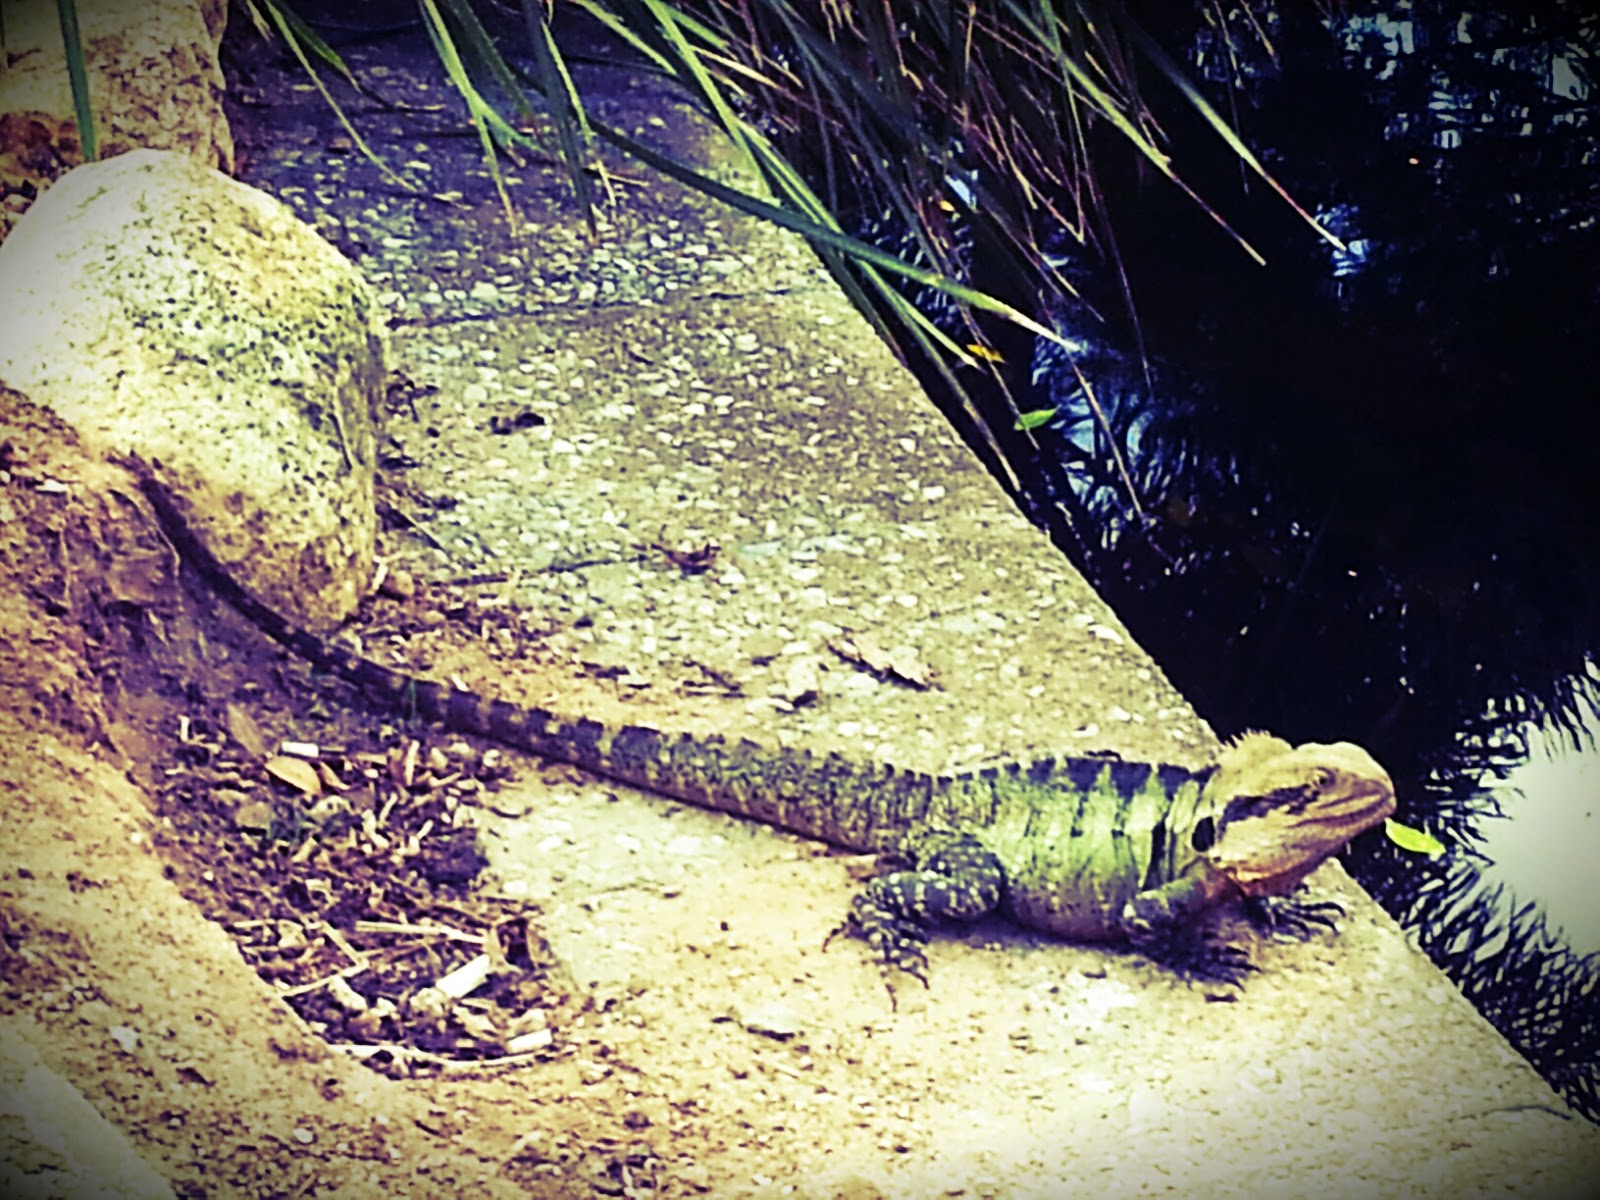 A water dragon at South Bank